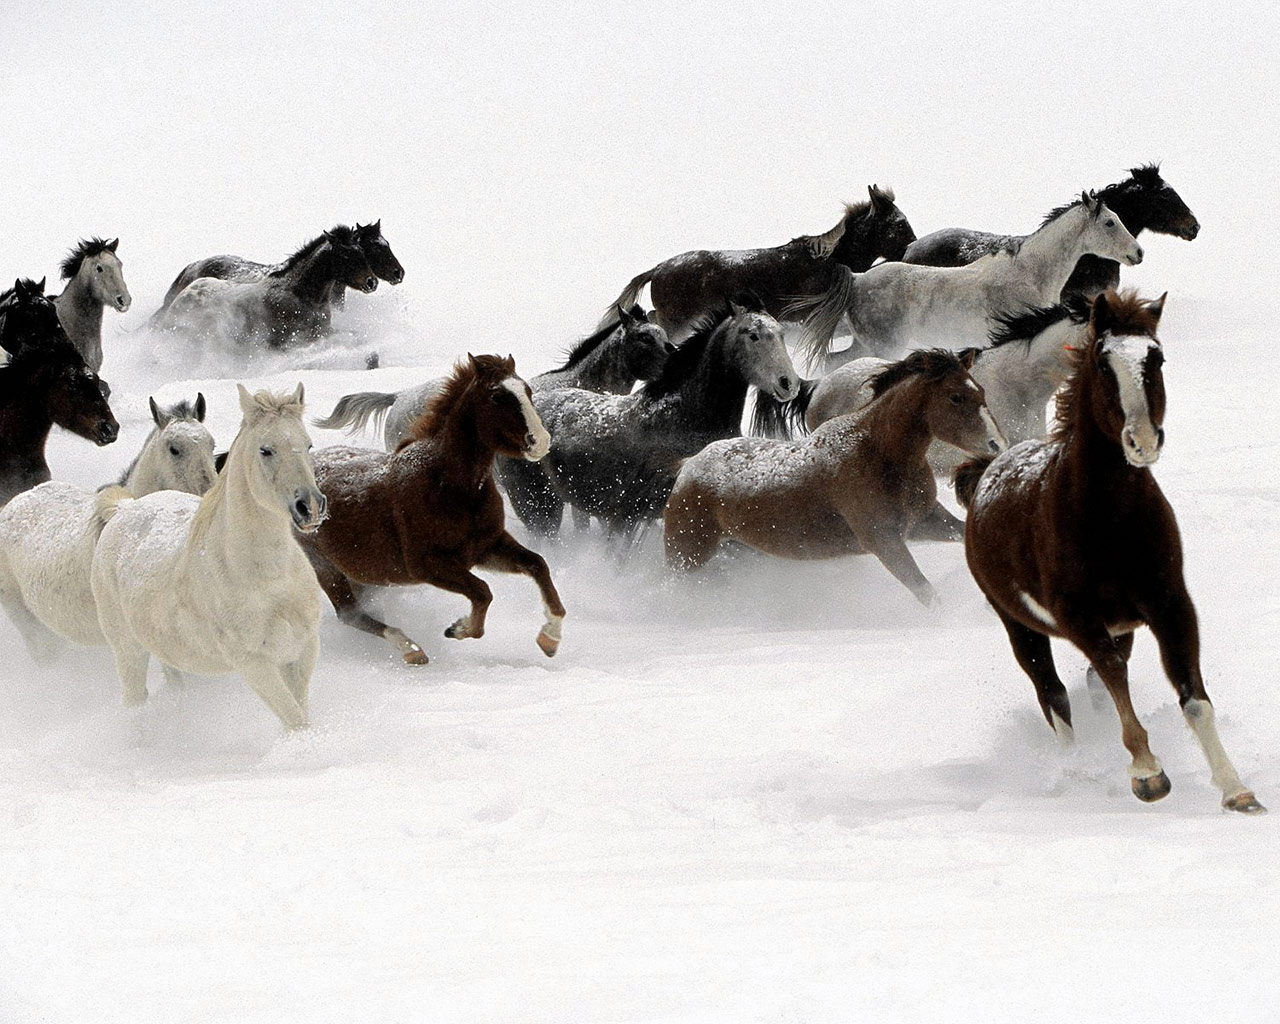 Great Wallpaper Horse National Geographic - galloping-horse-wallpaper  Gallery_604334.jpg